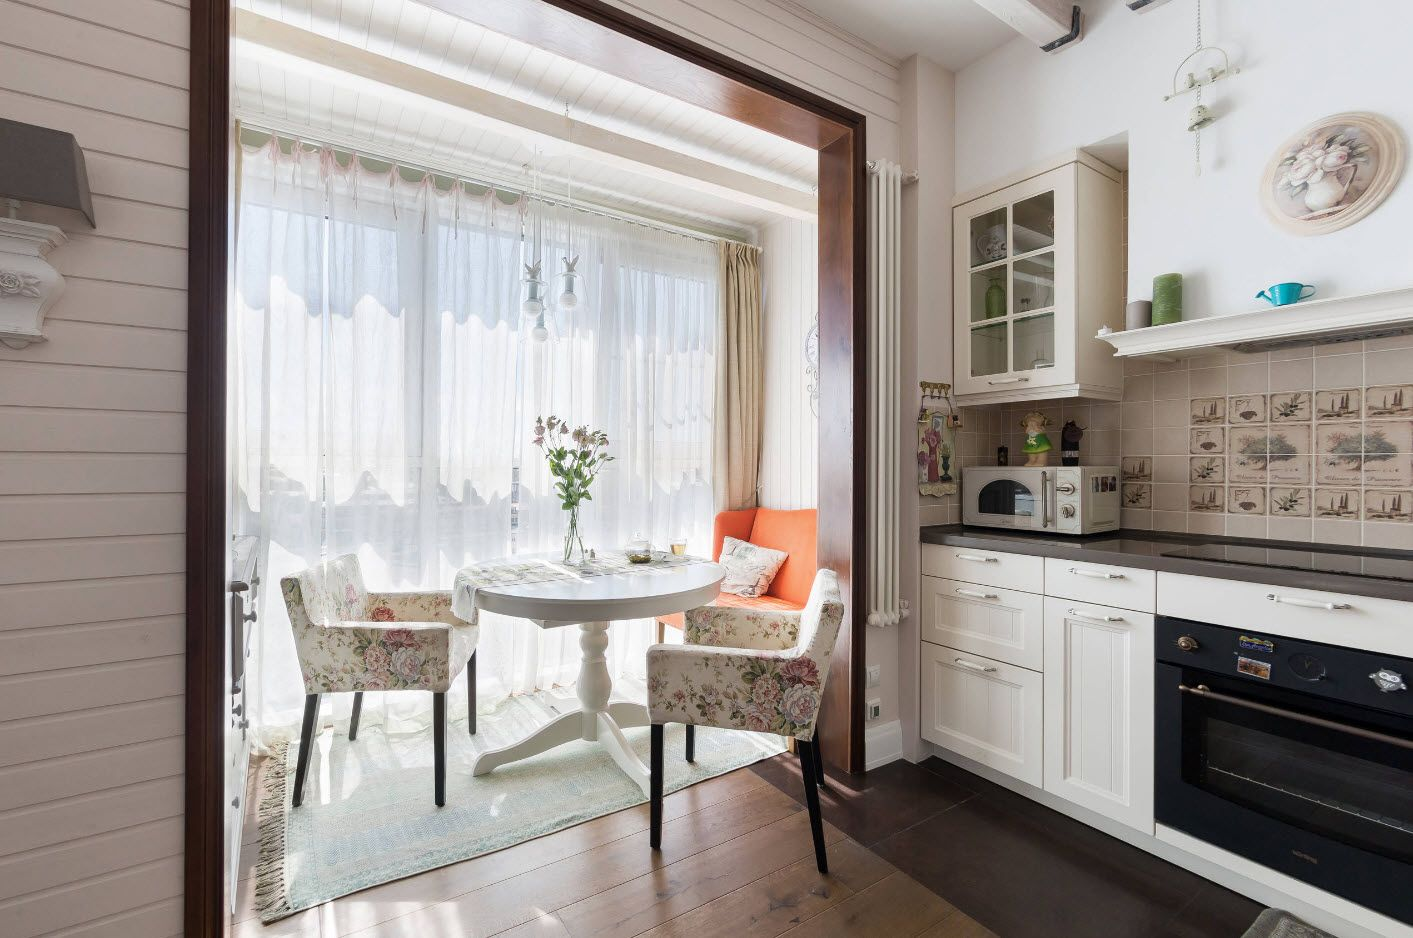 Nice combined kitchen and balcony full of natural light and airy tulle